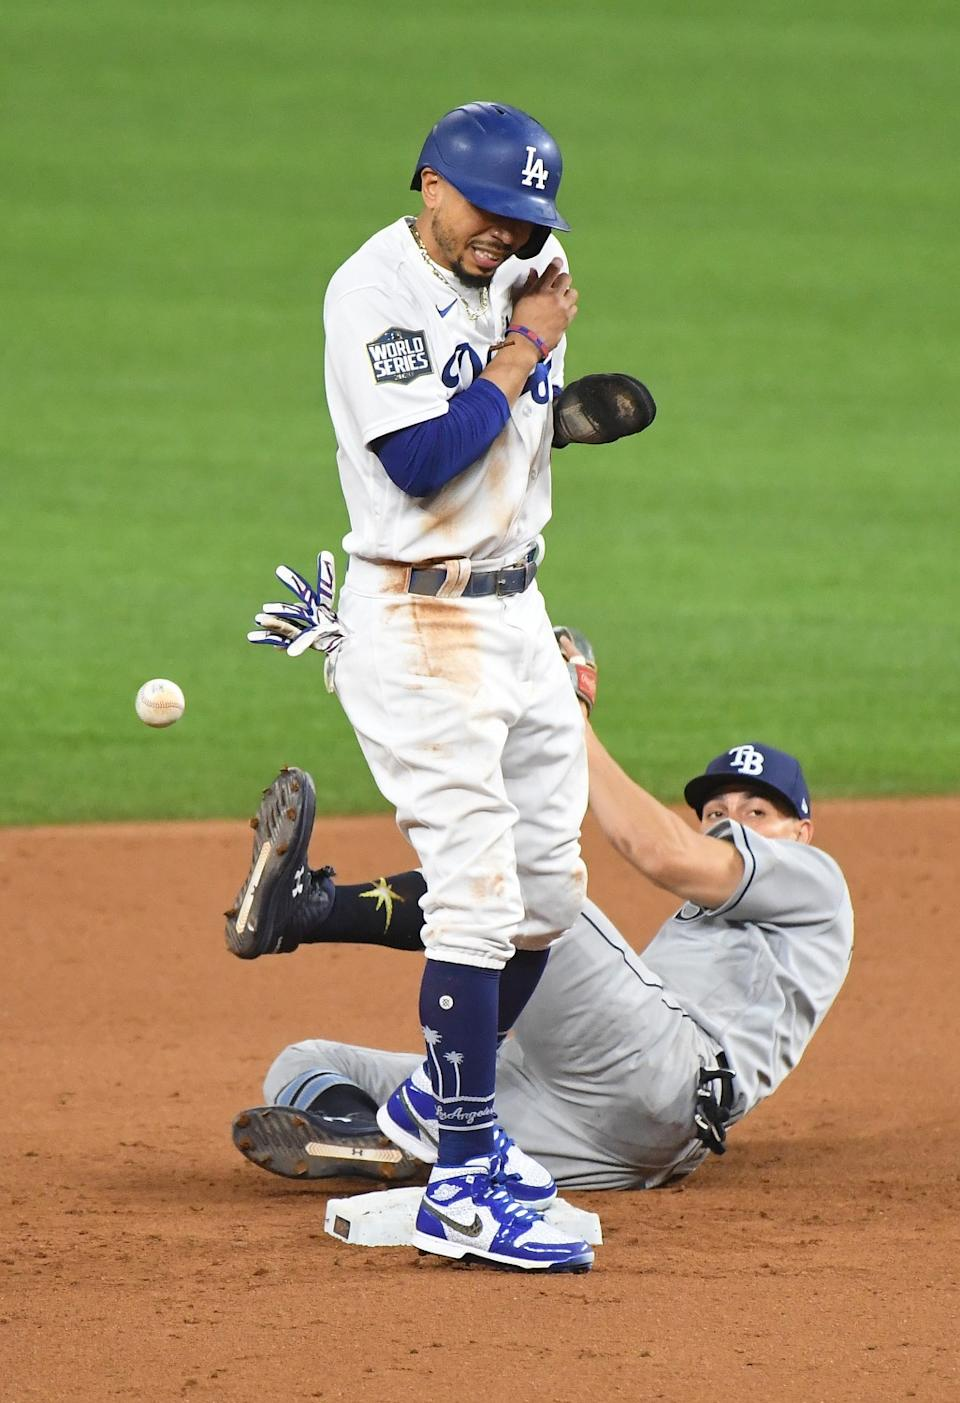 Dodgers baserunner Mookie Betts collides with Tampa Bay Rays shortstop Willy Adames after reaching second base.